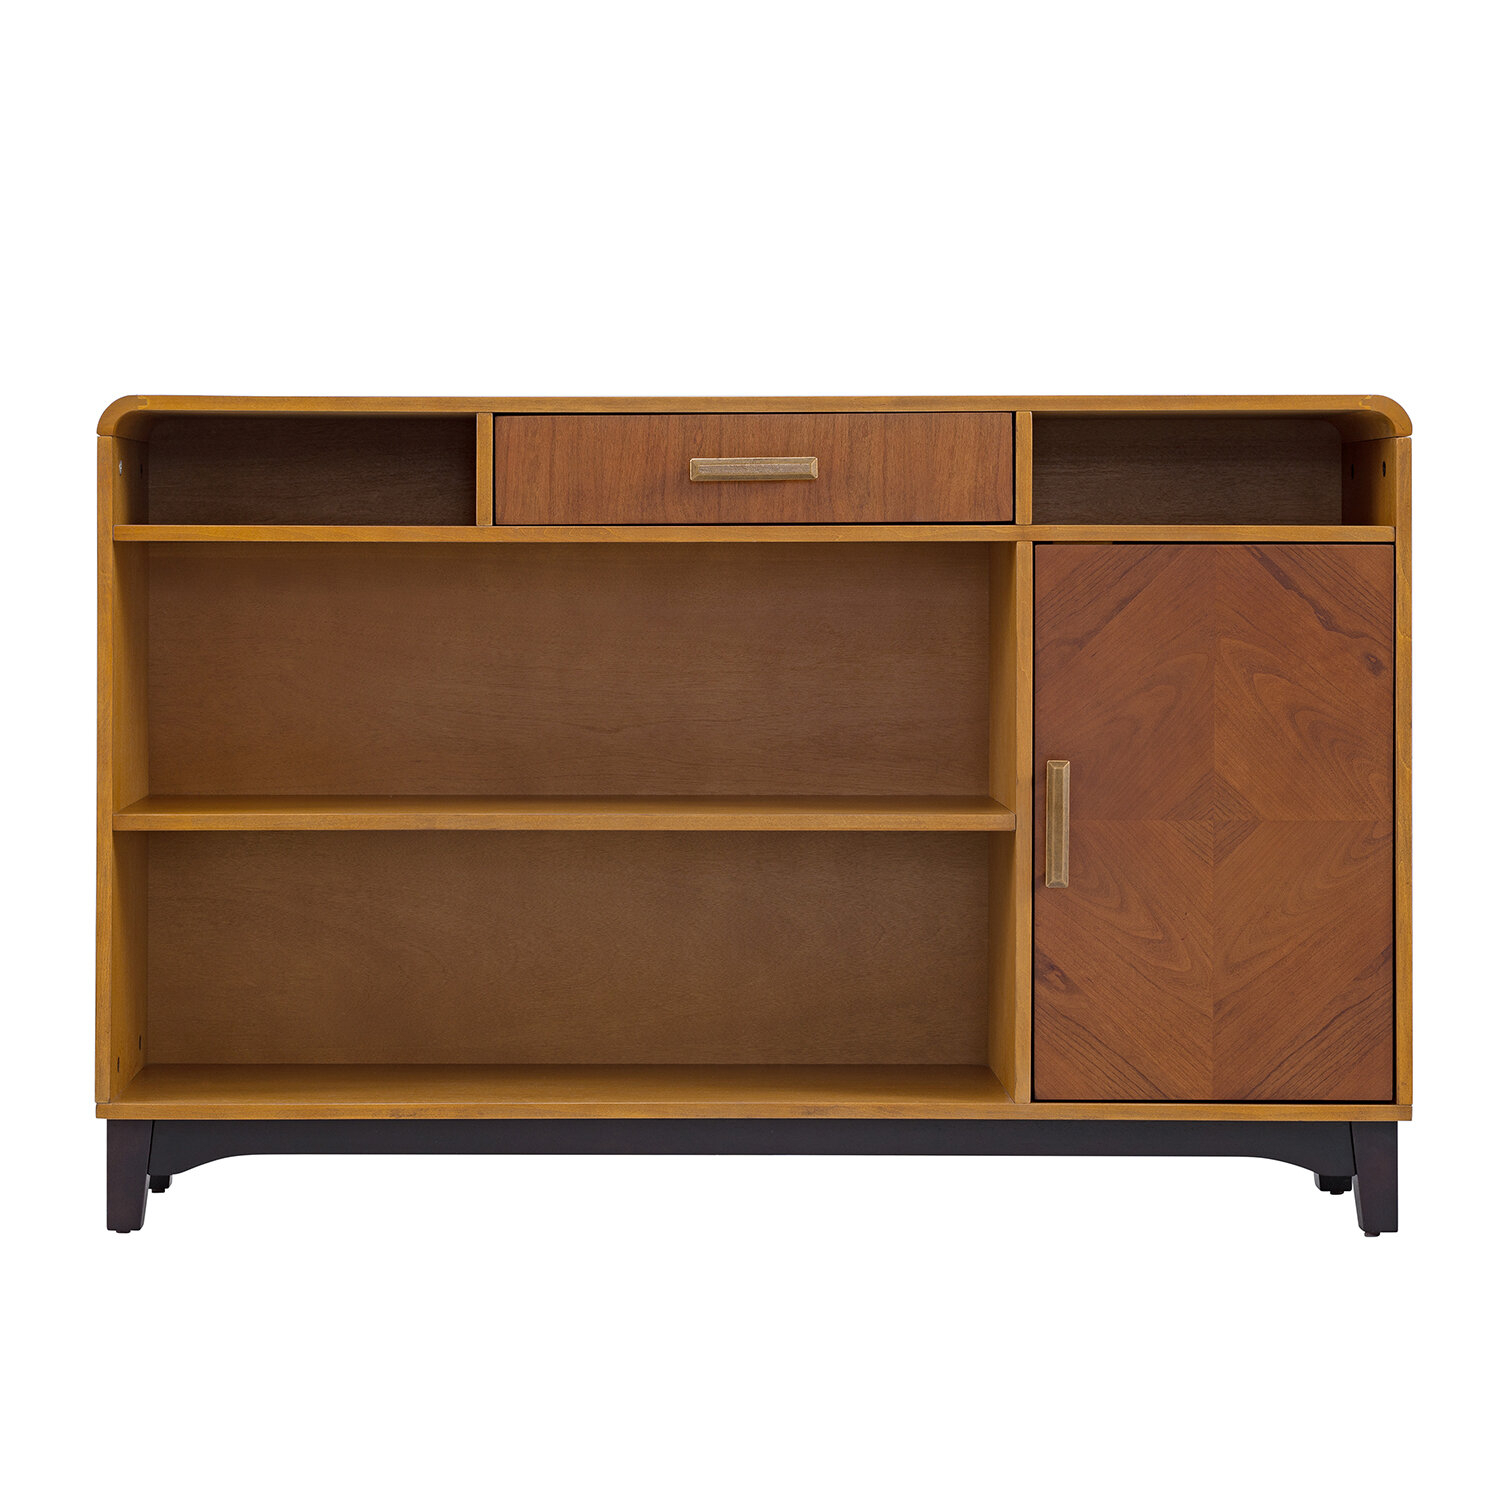 Modern & Contemporary Wood Veneer Storage Credenza | Allmodern With Wooden Deconstruction Credenzas (View 21 of 30)